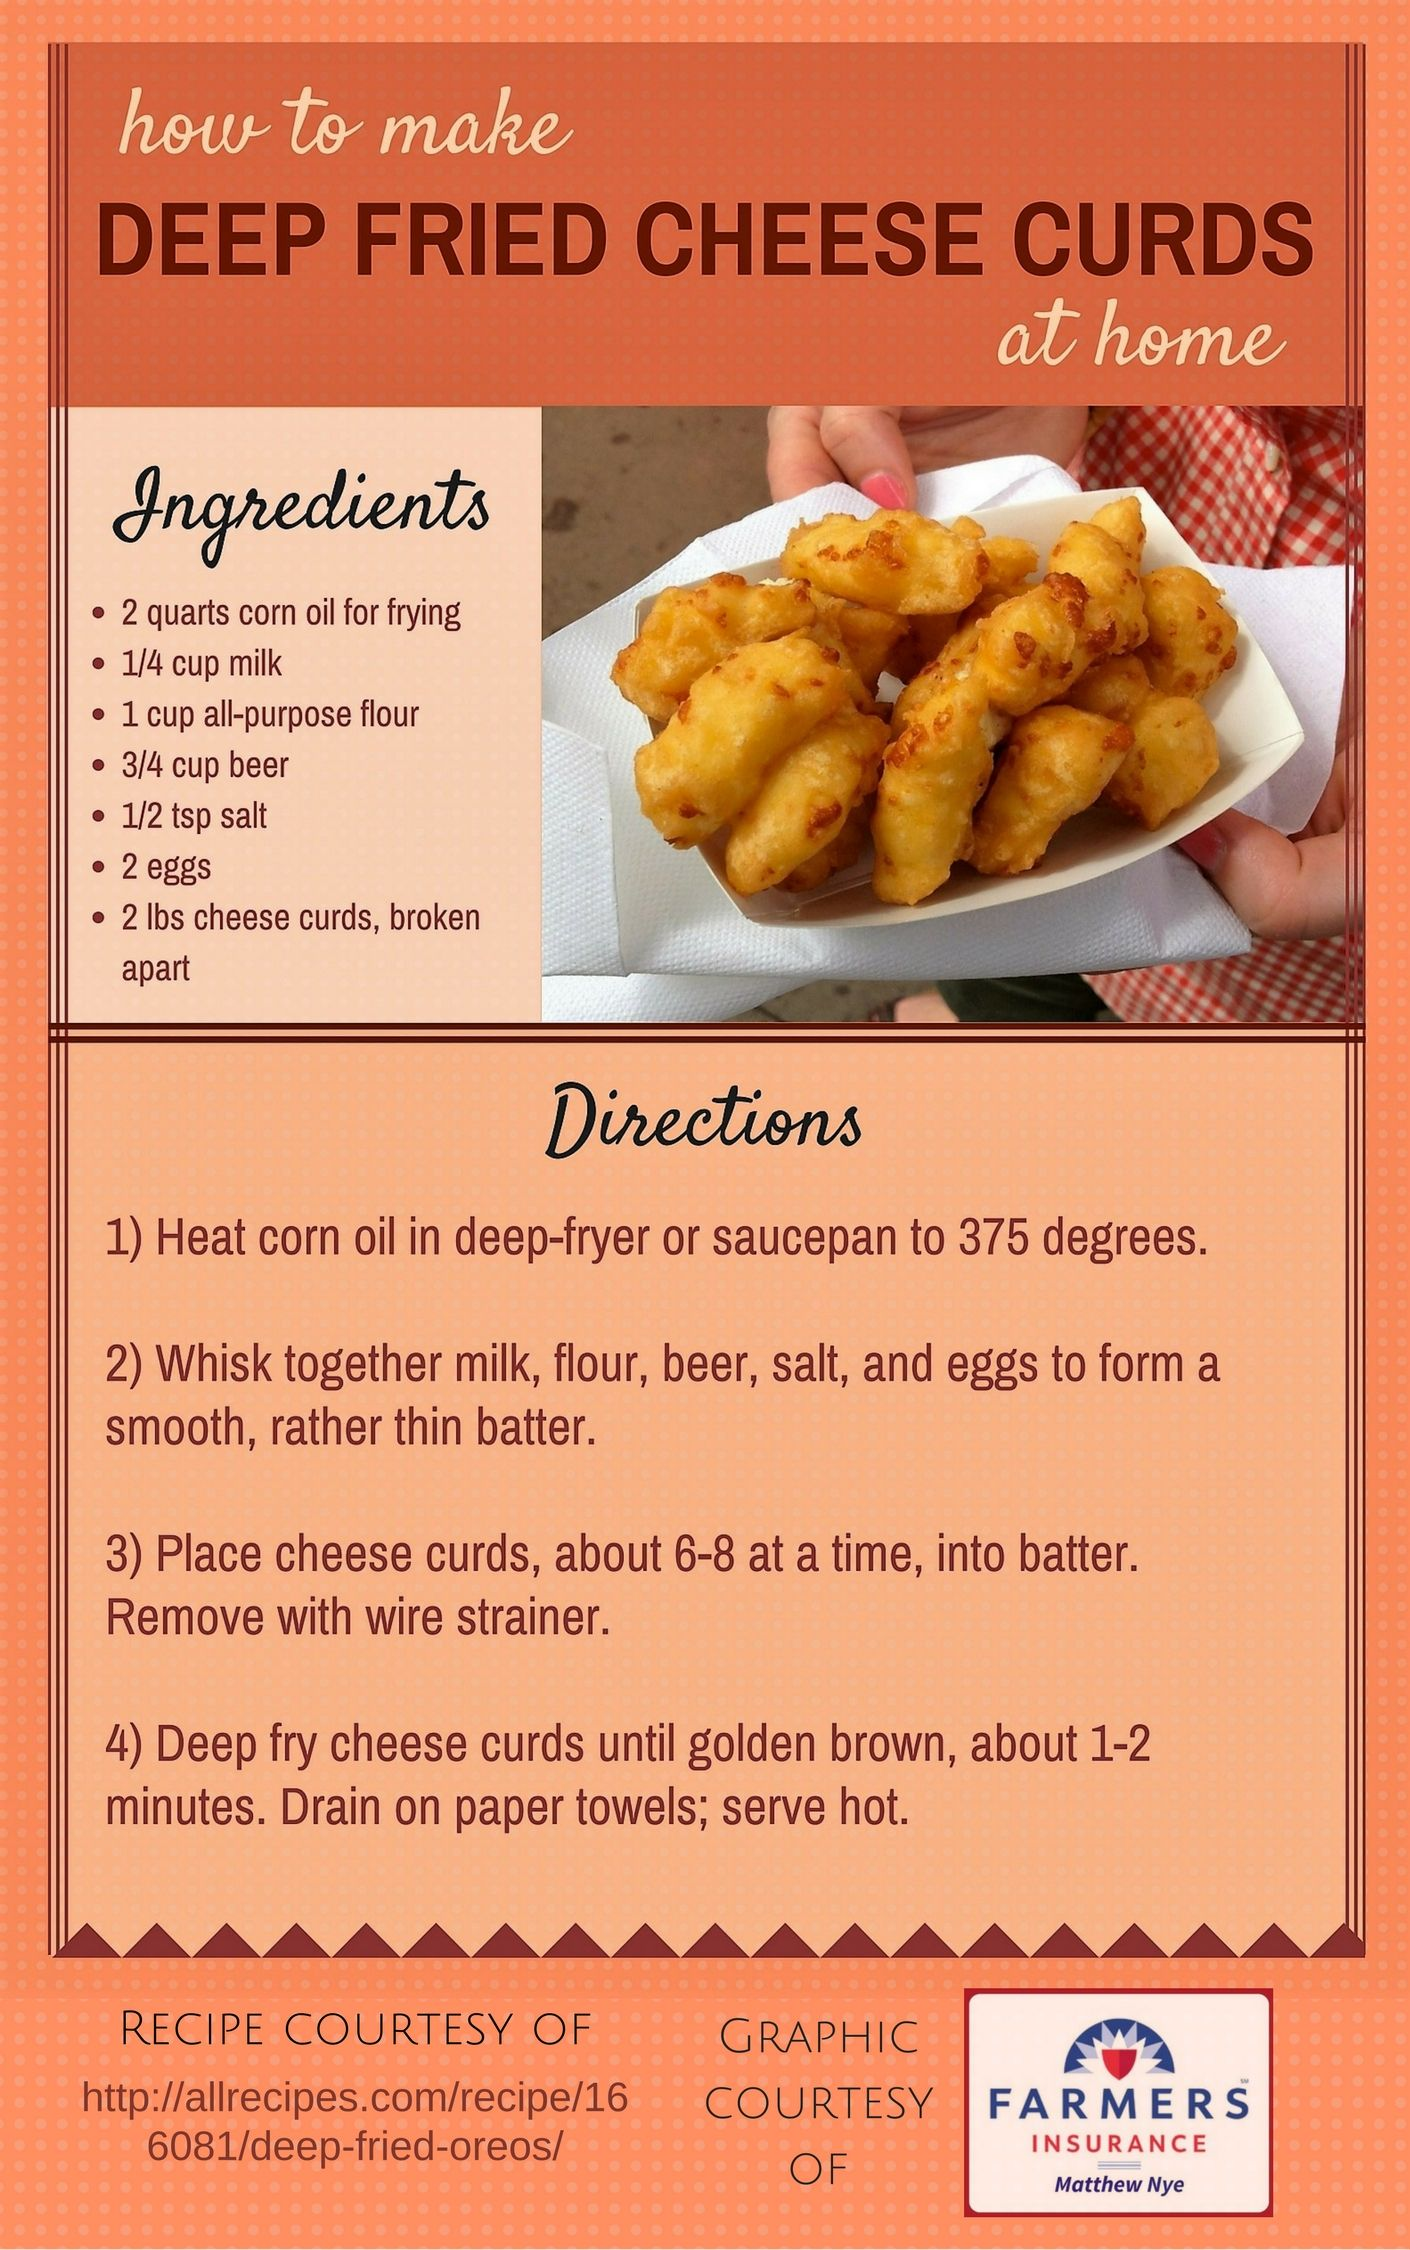 how to make deep fried cheese curds at home! homemade state fair food